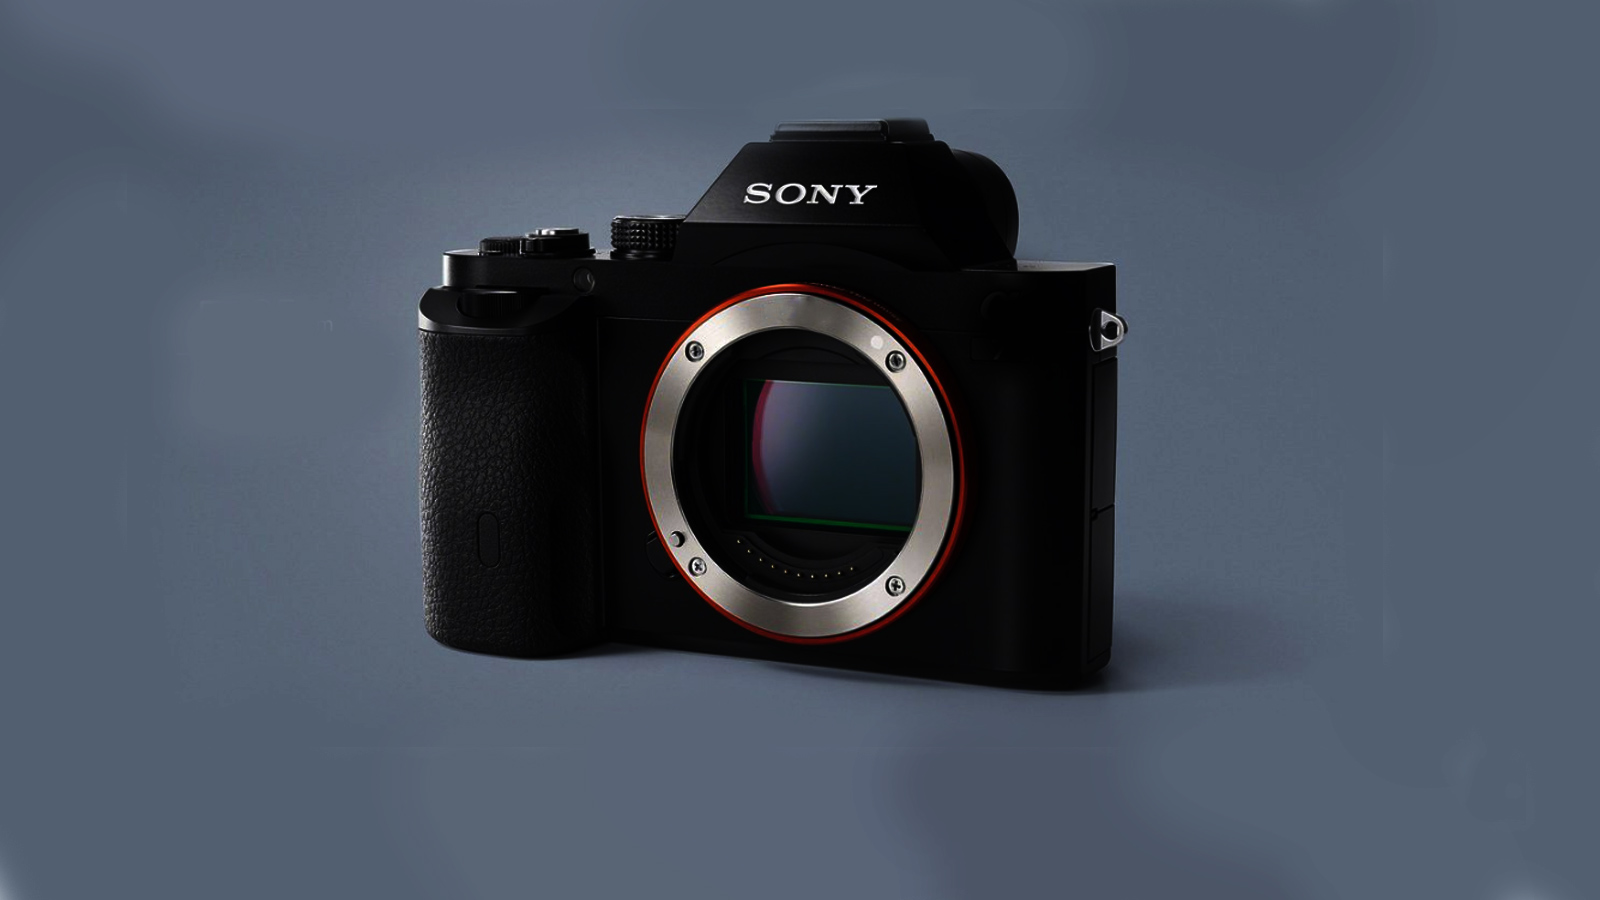 Sony launches 100MP full-frame sensor capable of 6K video for the consumer camera